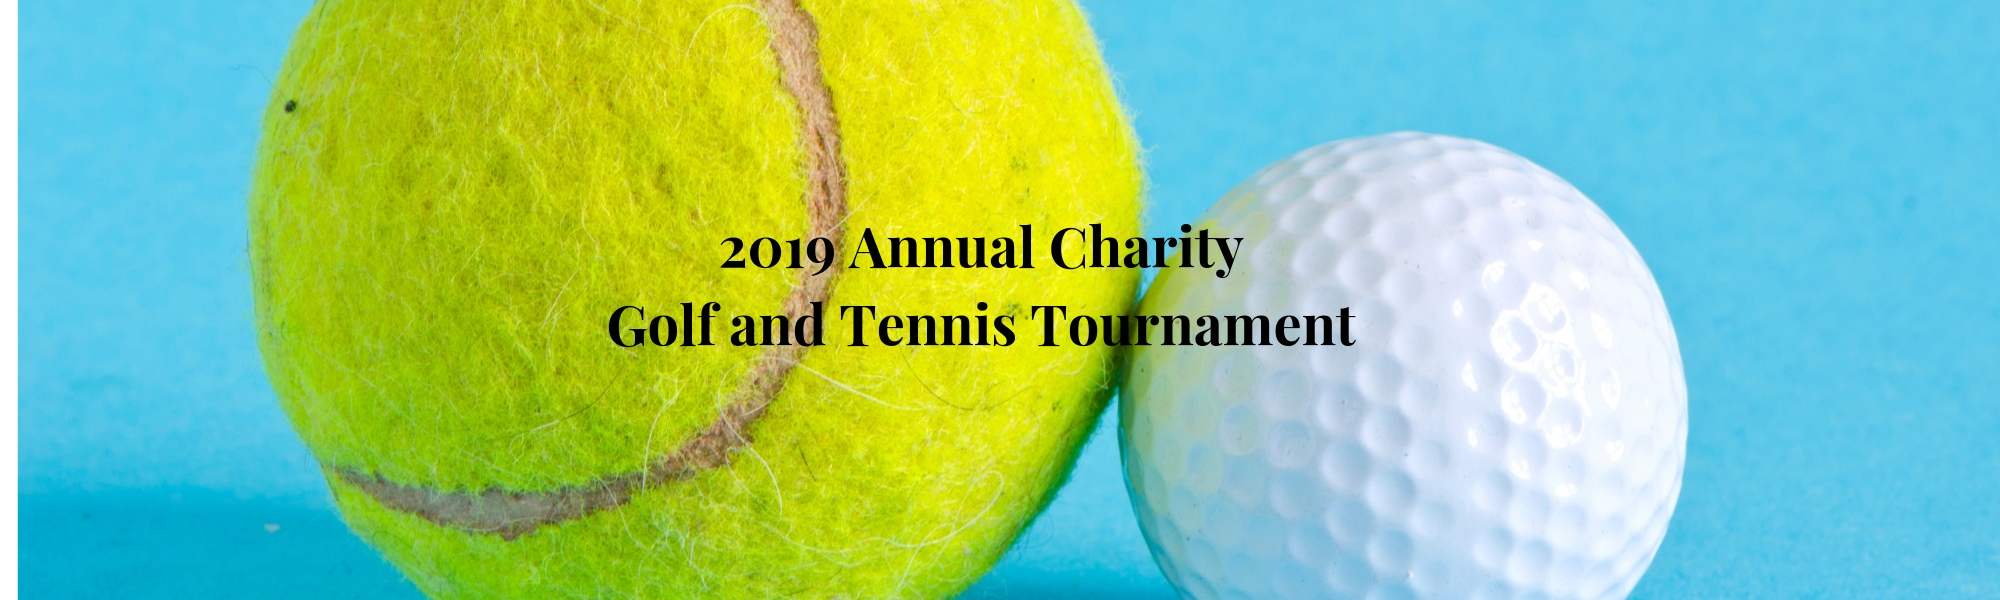 2019 Charity Golf and Tennis Tournament